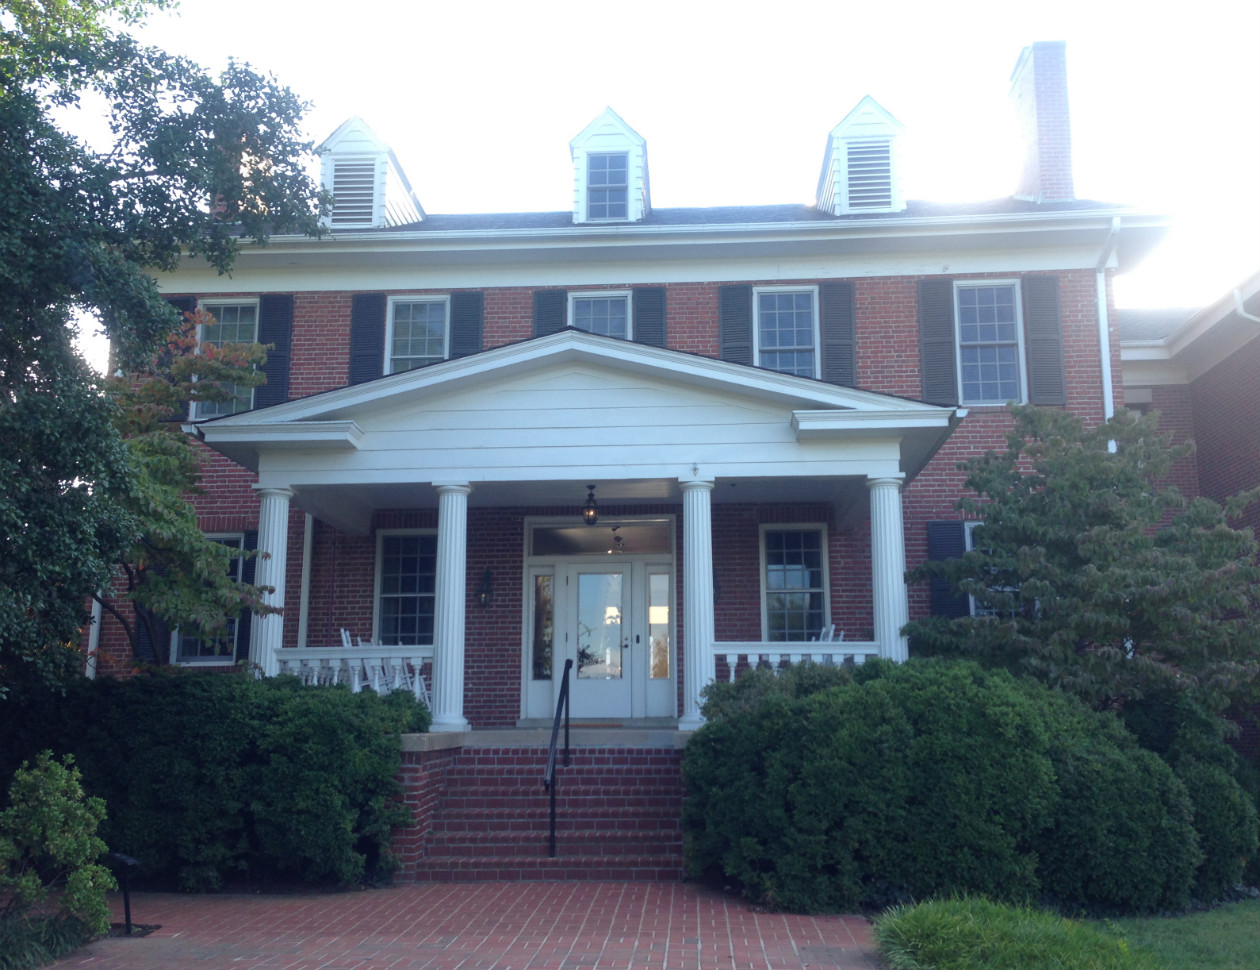 Jepson Alumni Center (formally Kalnen Inn and Trench Hill), September 22, 2013